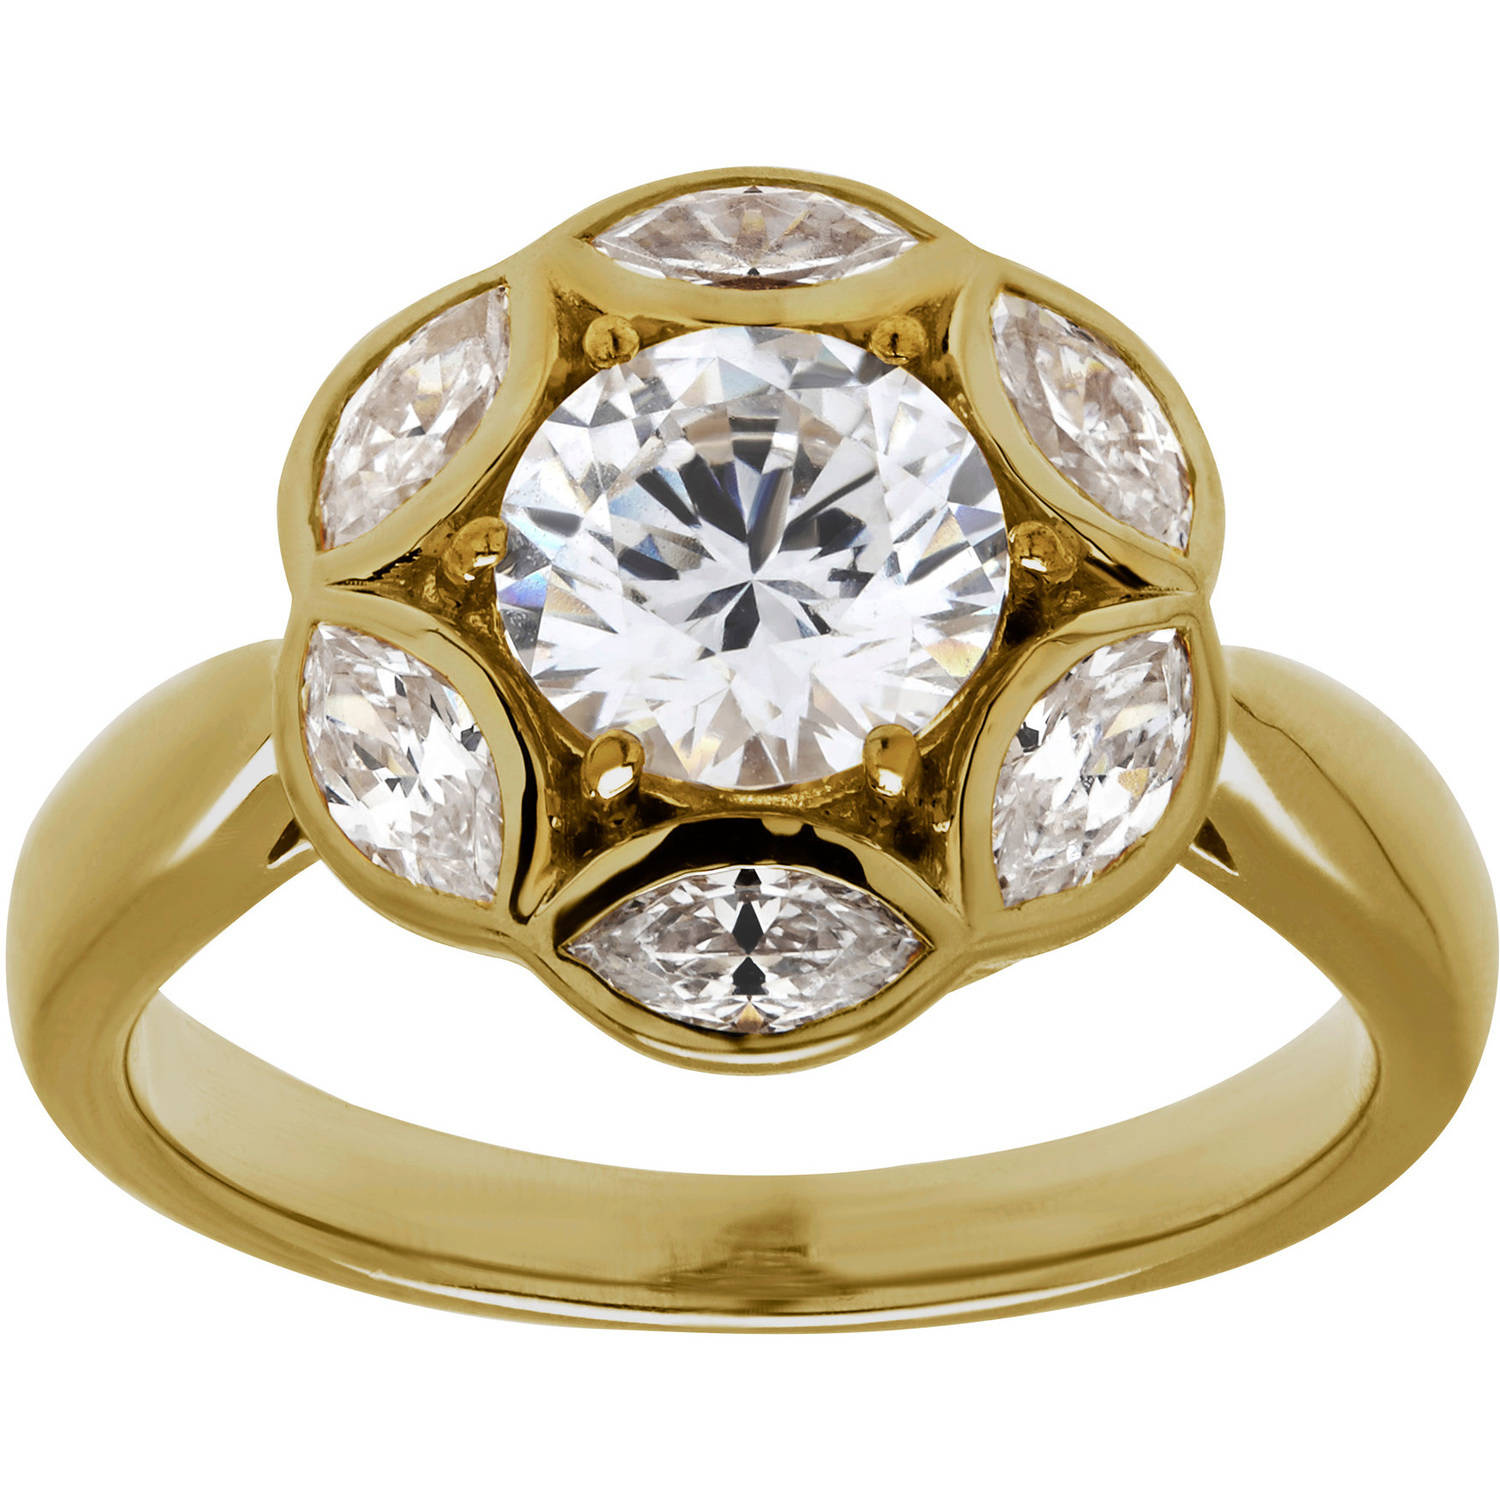 10.75 Carat T.G.W. Cubic Zirconia Solitaire Gold over Sterling Silver Ring, Size 7